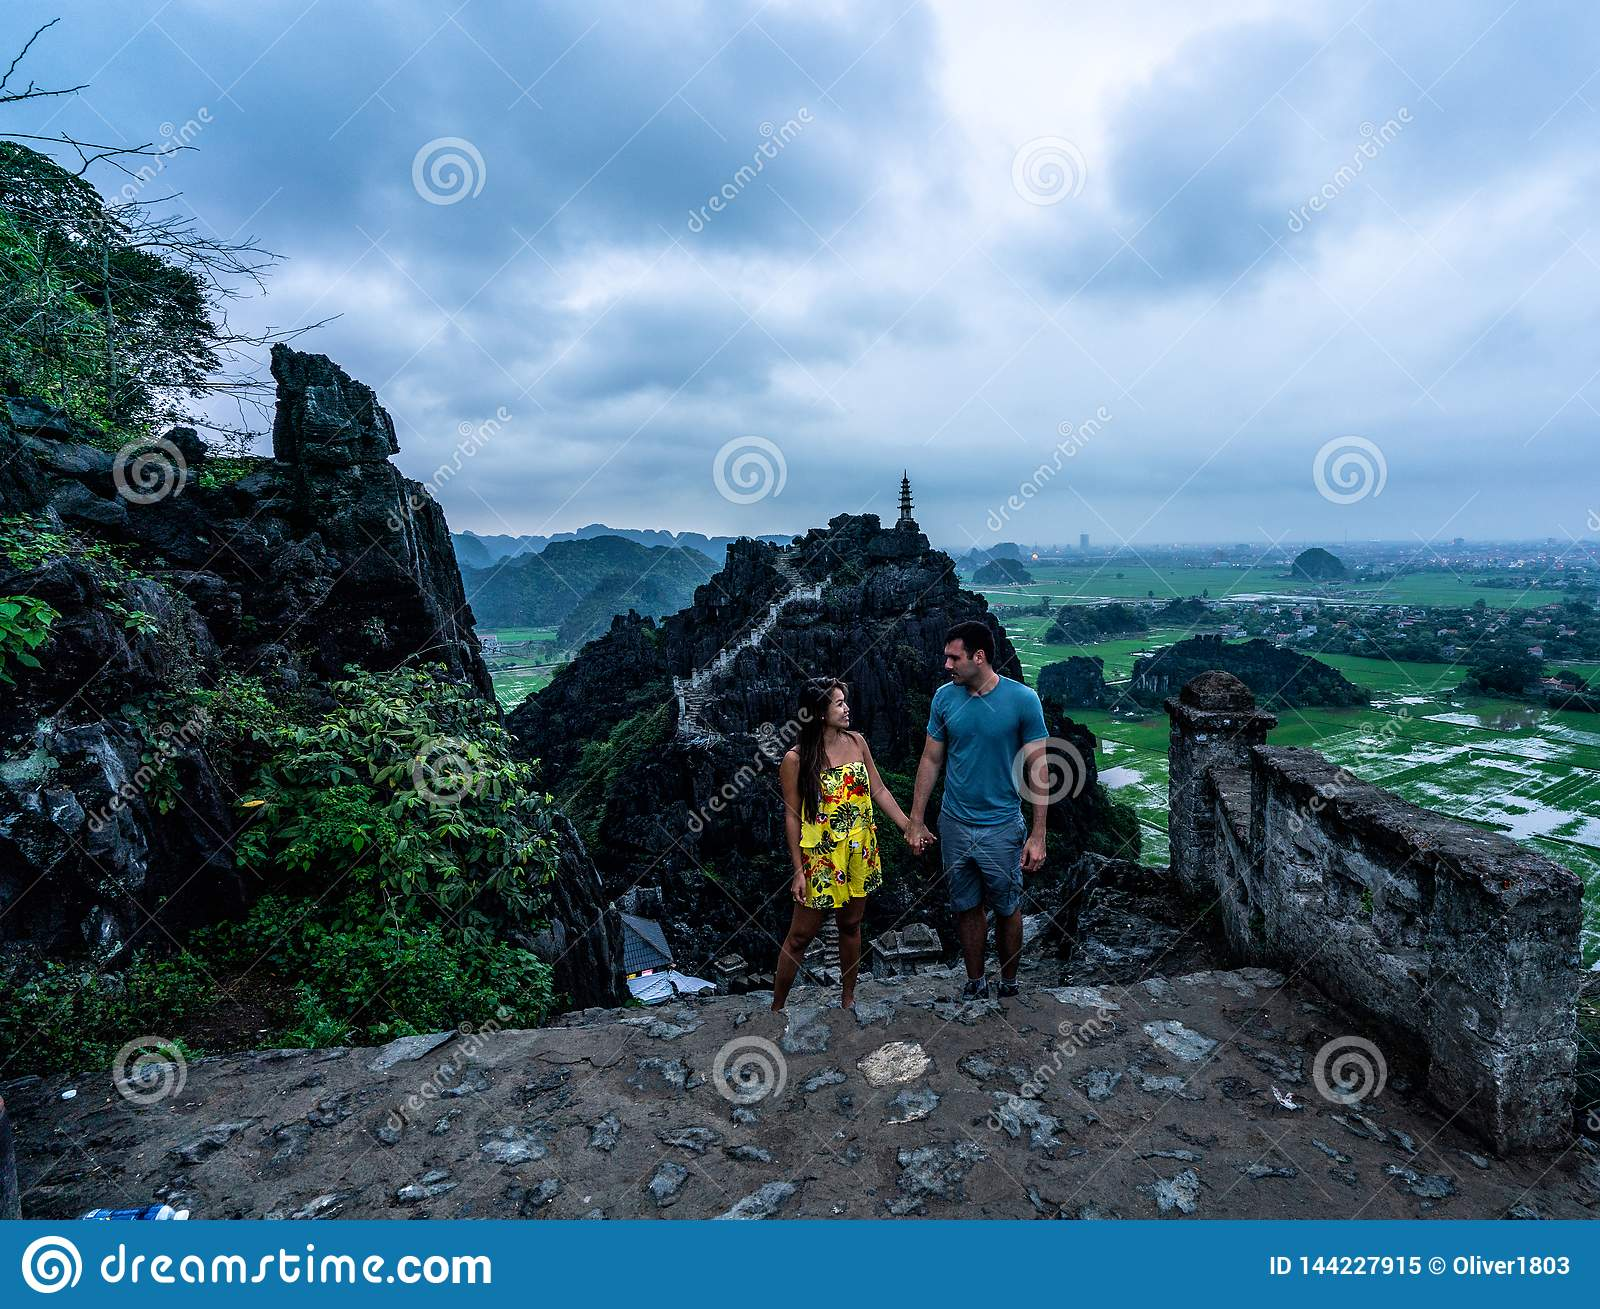 A couple overlooks the mountains of northern Vietnam from Hang Mua, a popular hiking destination.